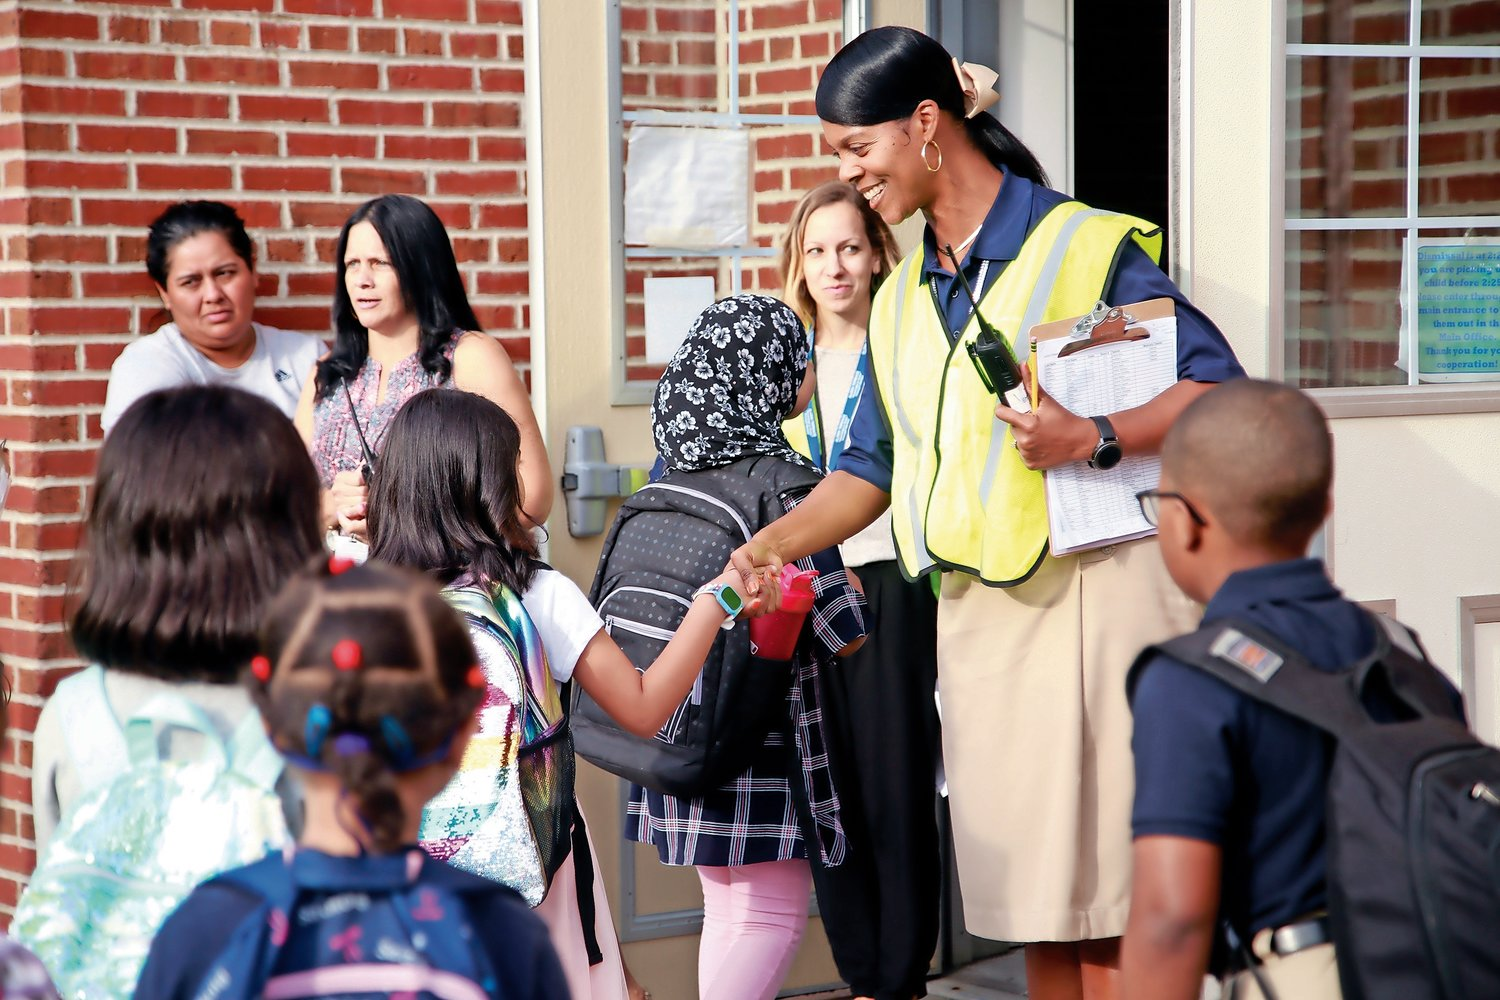 Principal Shawnee Warfield greeted second-graders on their first day back to the Alden Terrace School.